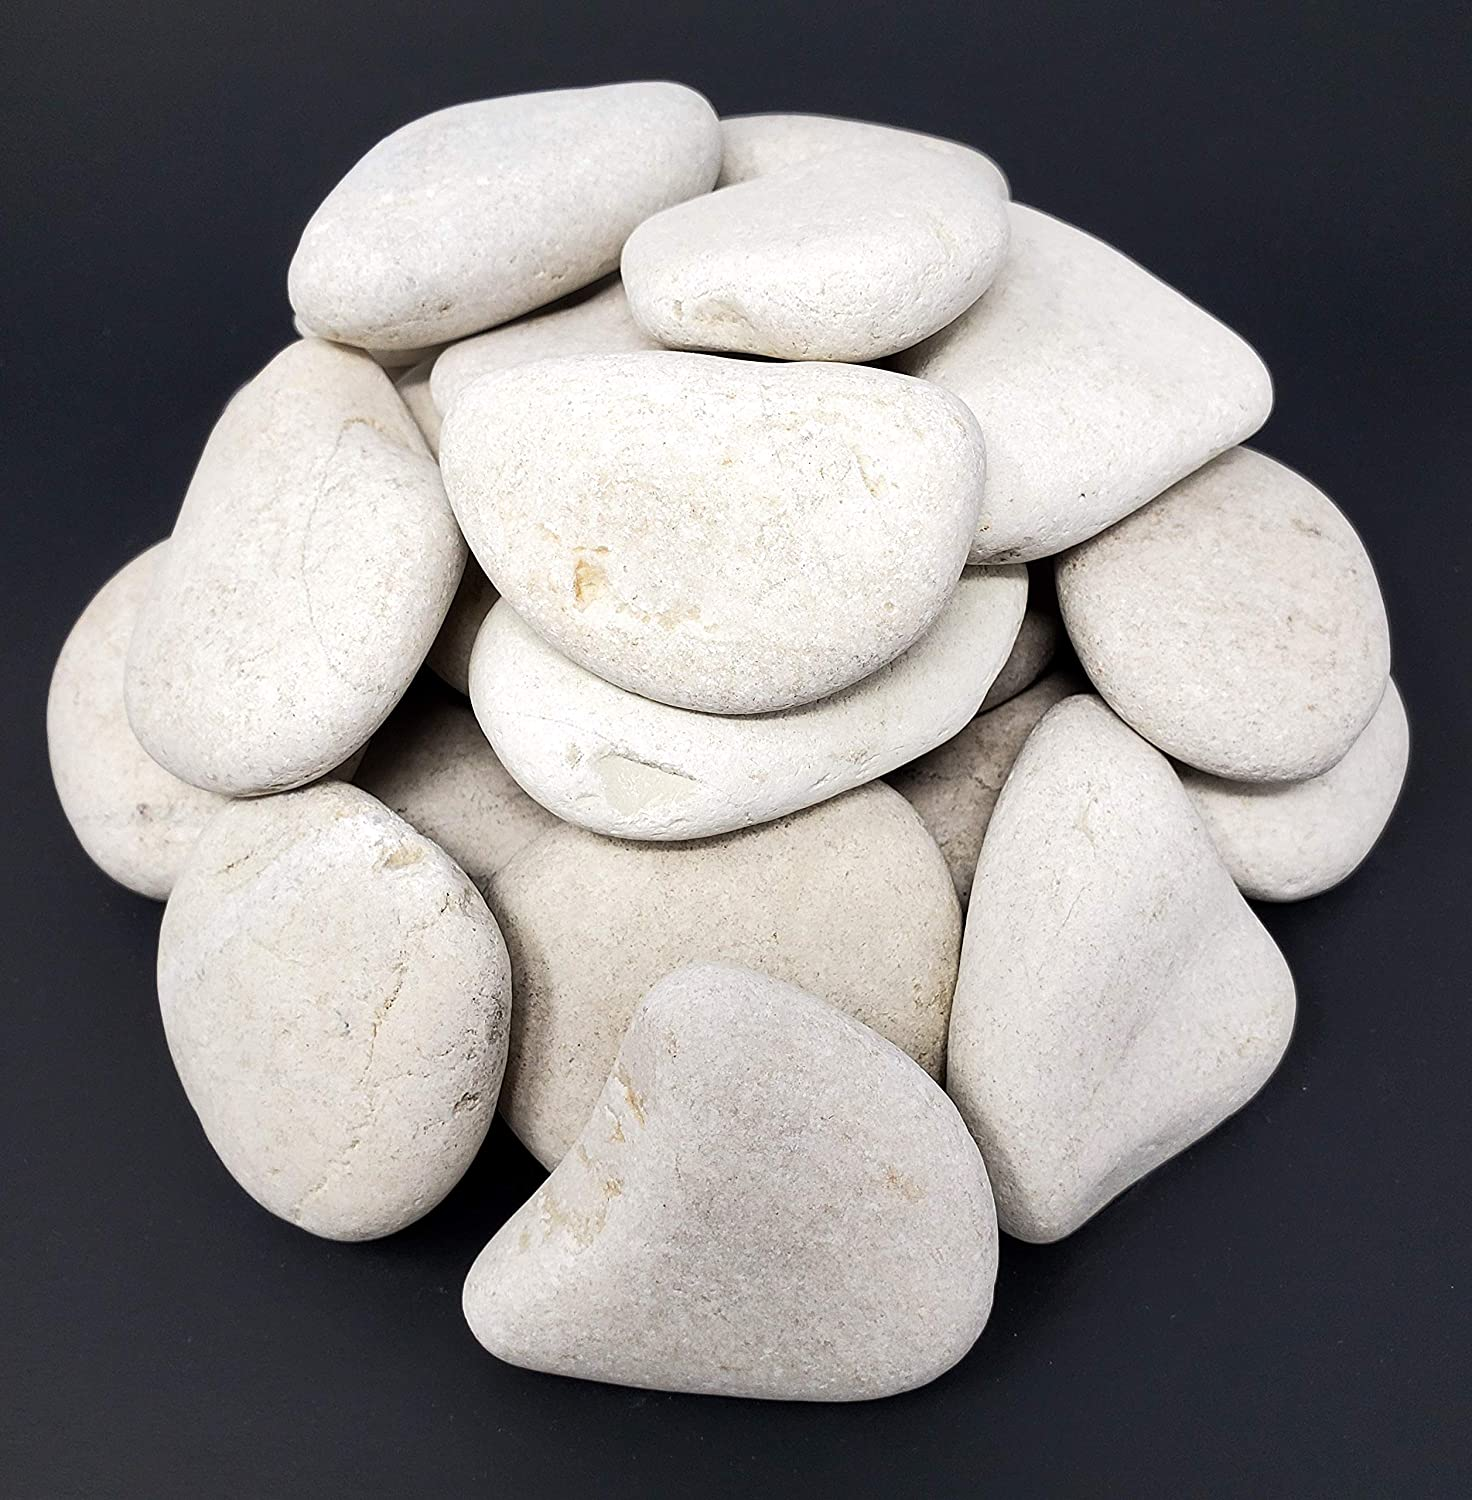 Capcouriers Garden Rocks (White) - Landscaping Rocks for Garden and Landscape Design - 5 Pounds (About 25 Rocks)